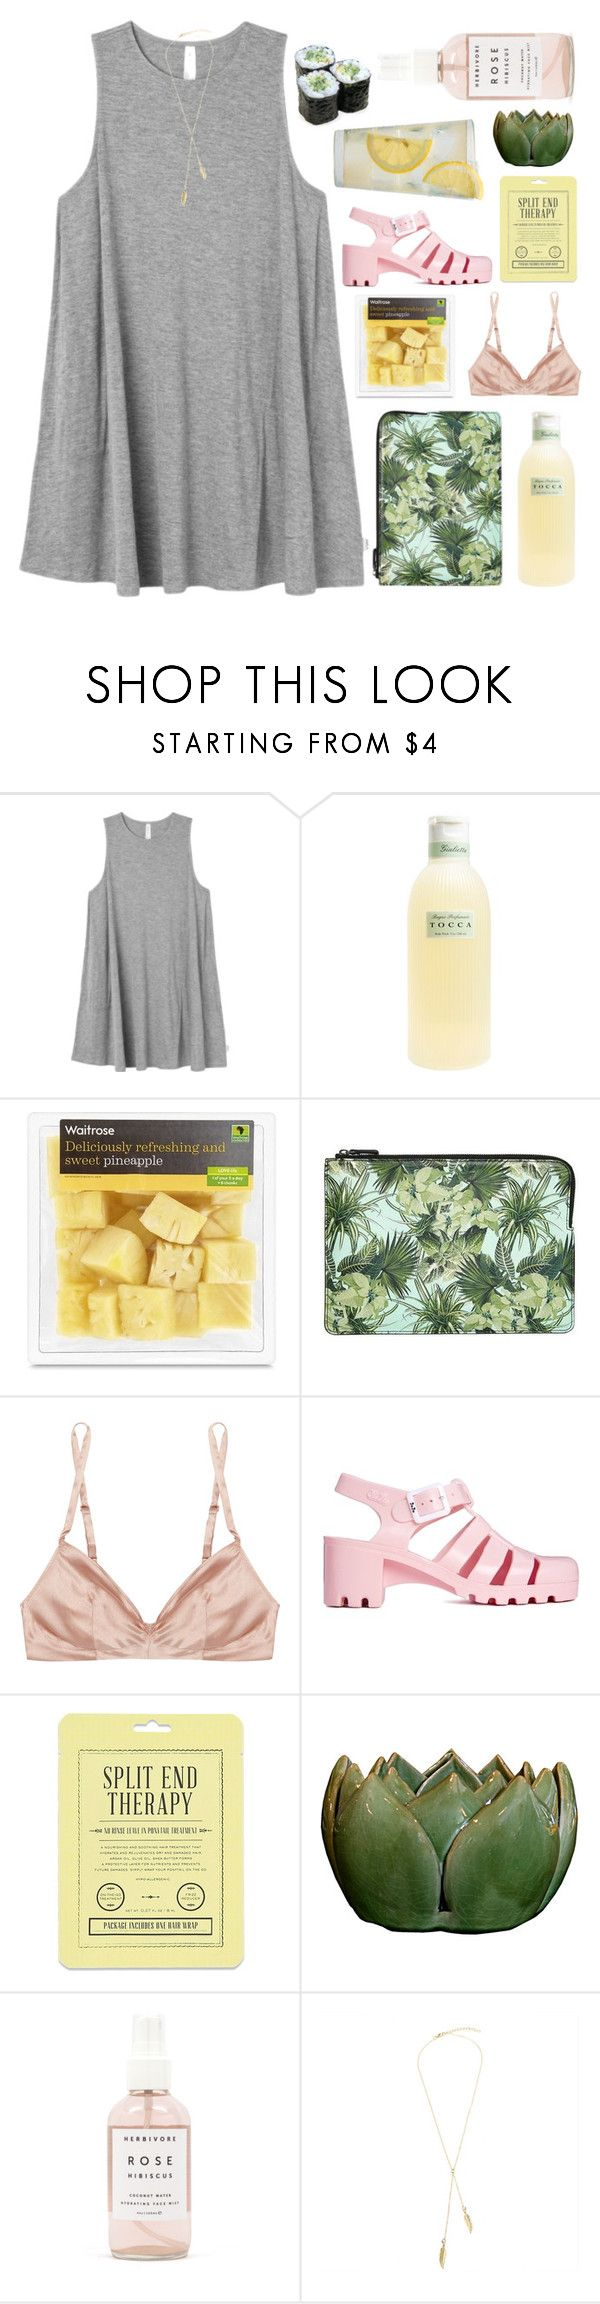 """""""1000 times i say i'm sorry"""" by forgetful-mind ❤ liked on Polyvore featuring RVCA, Tocca, Emma Cook, Rituel by Carine Gilson, JuJu, Love 21, Martha Stewart and Herbivore"""